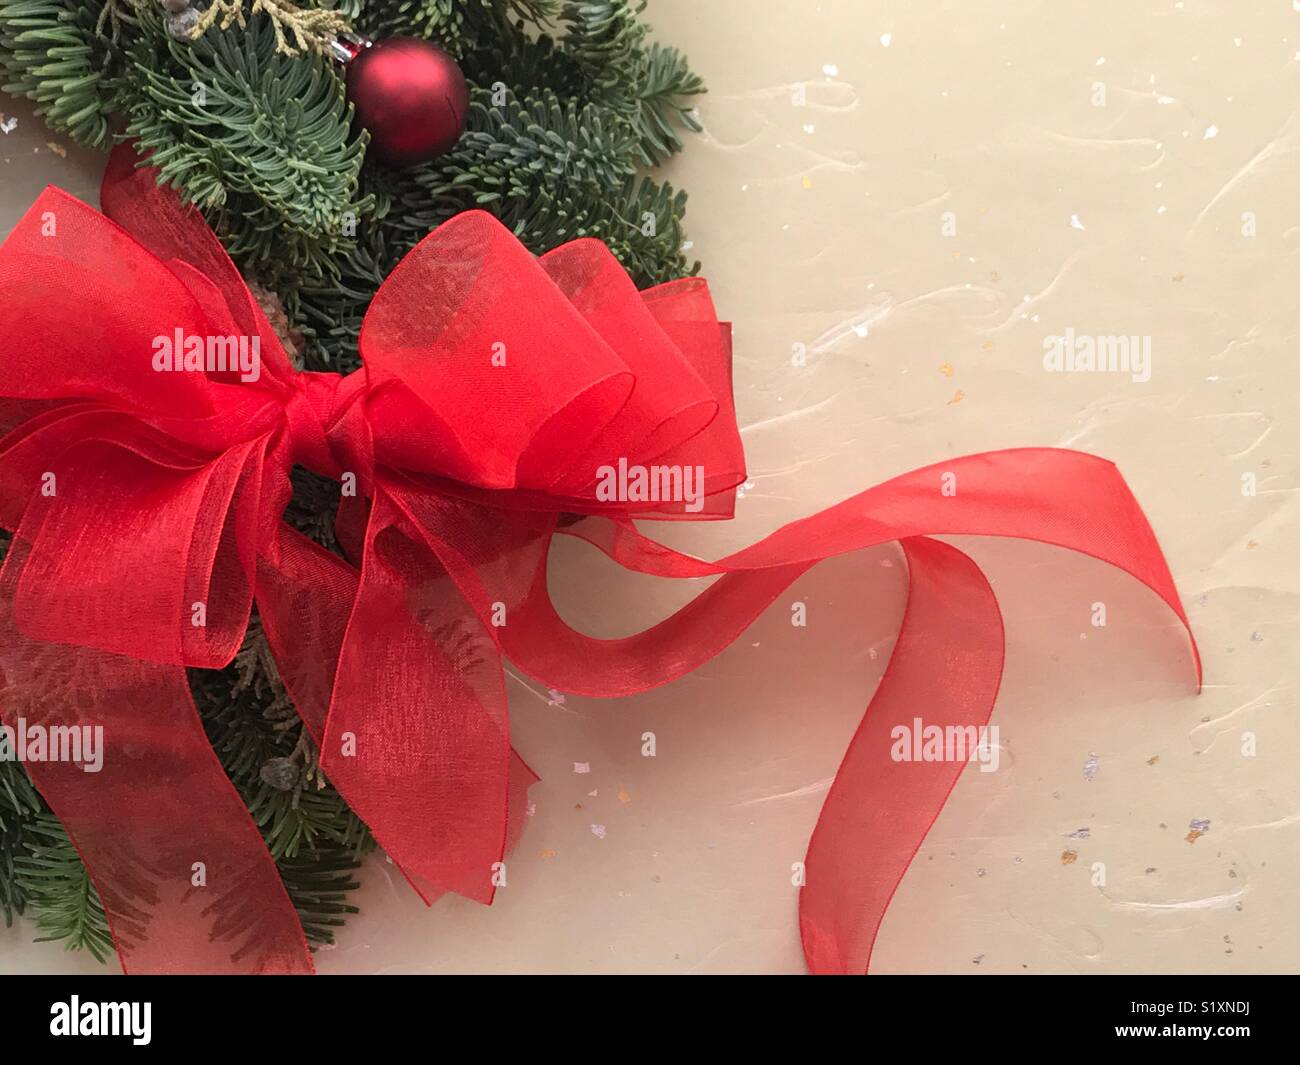 Red bow on Christmas wreath with copy space Stock Photo